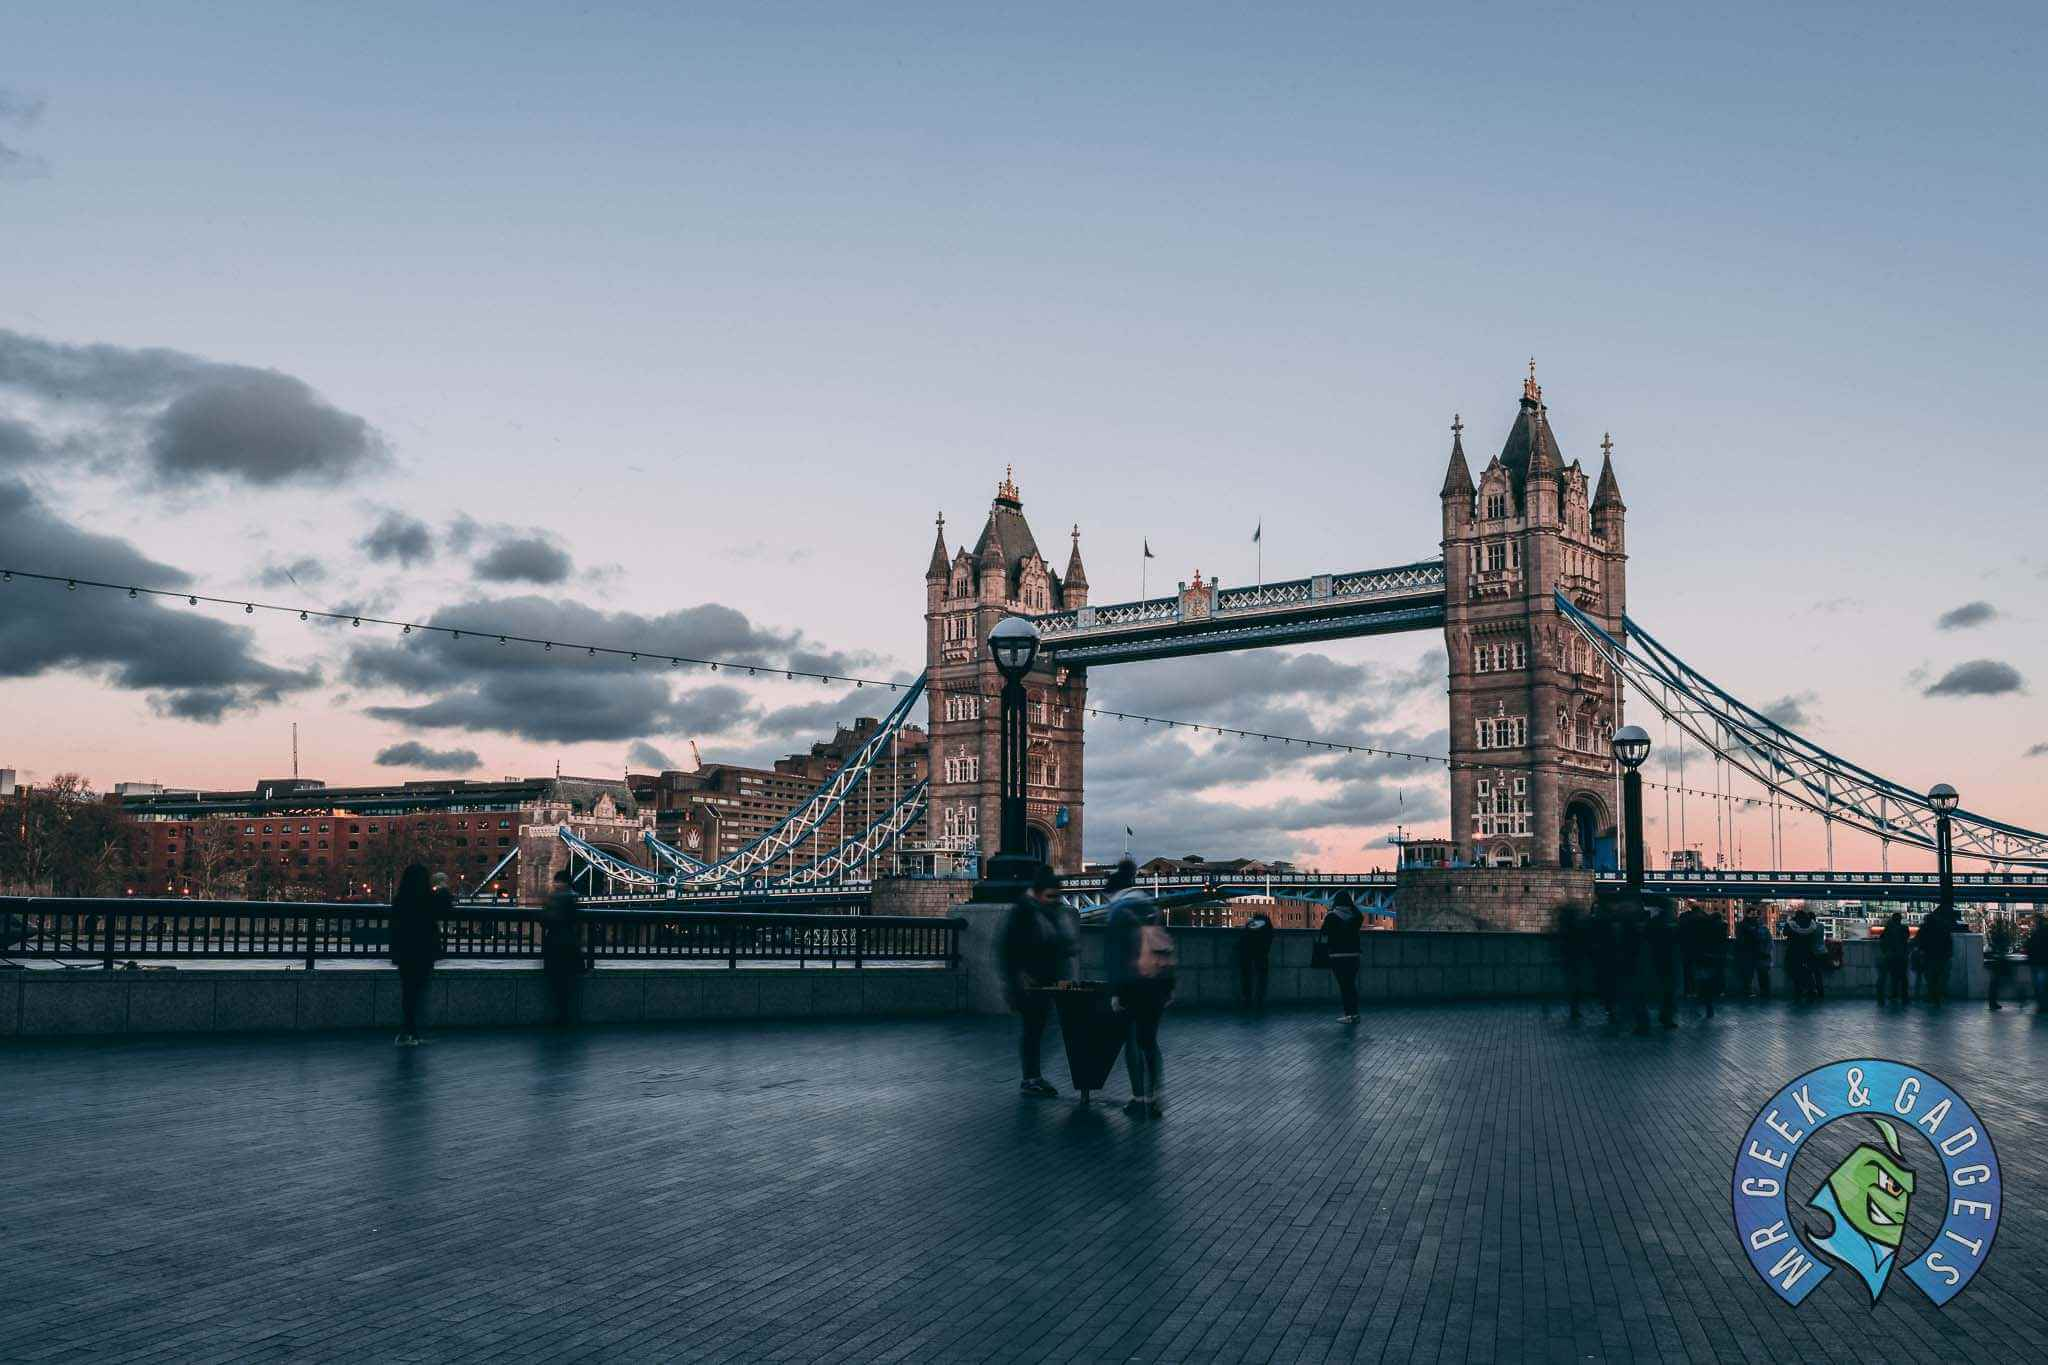 Fantastic Photographic Trip Around London